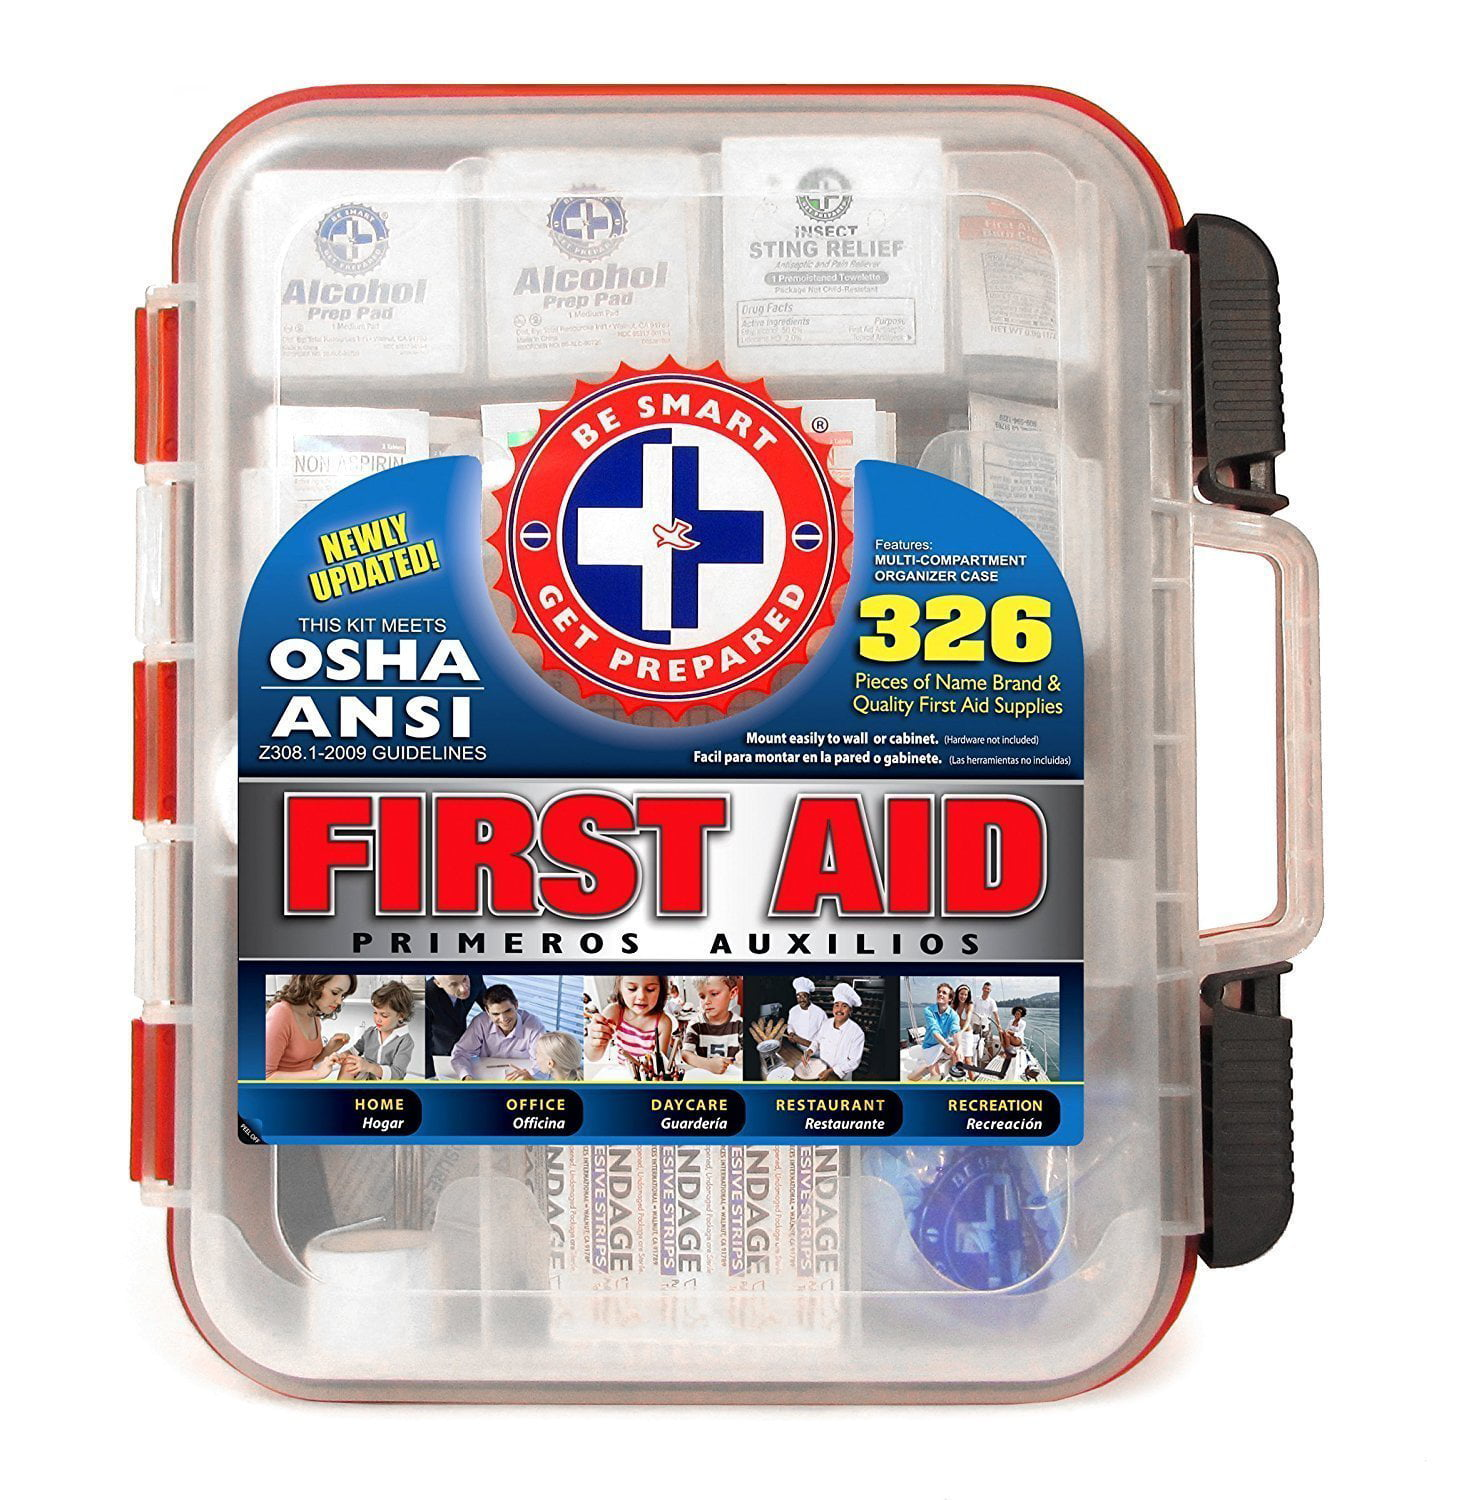 First Aid Kit Hard Red Case 326 Pieces Exceeds OSHA and ANSI Guidelines by Be Smart Get Prepared